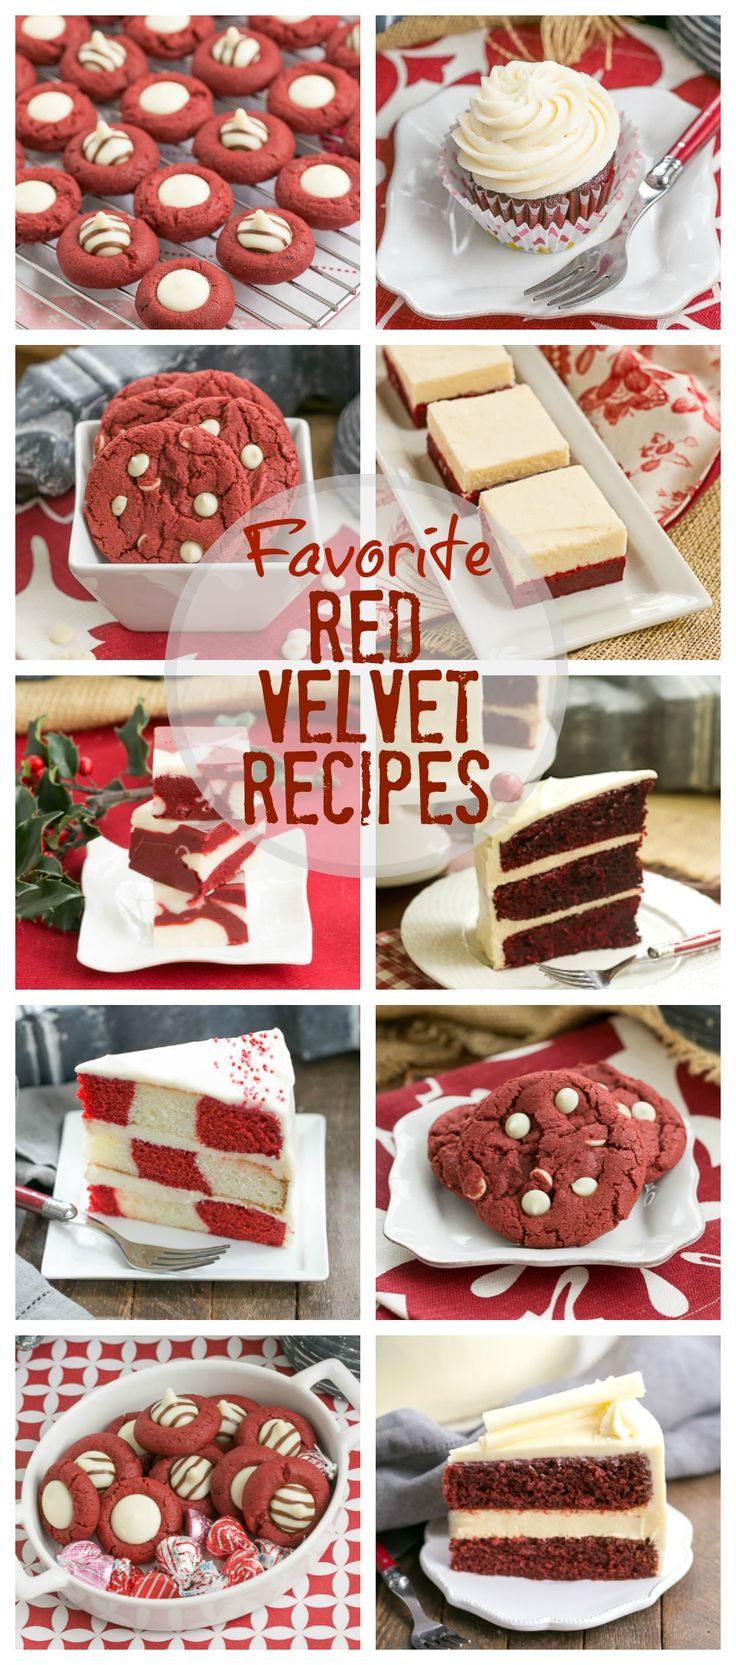 Favorite Red Velvet Recipes   Perfect for Valentine's Day, Christmas or anytime you're craving red velvet! @lizzydo